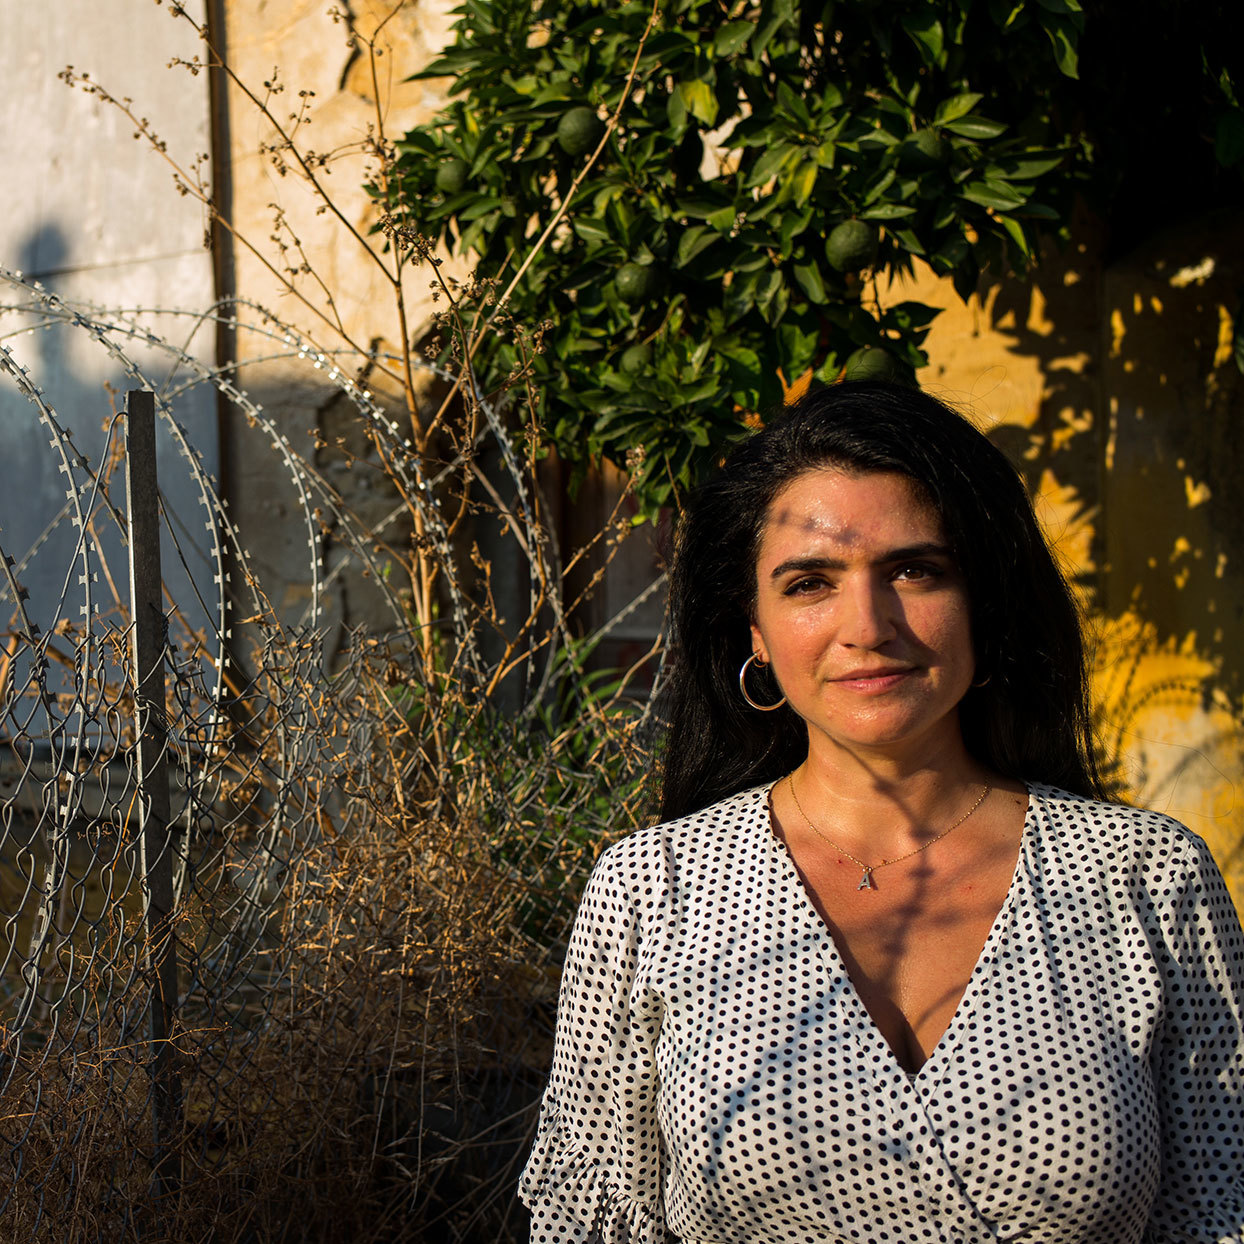 Cyprus Is an Island Divided: Here's How One Woman Is Using Food to Help Heal the Island's Fractures